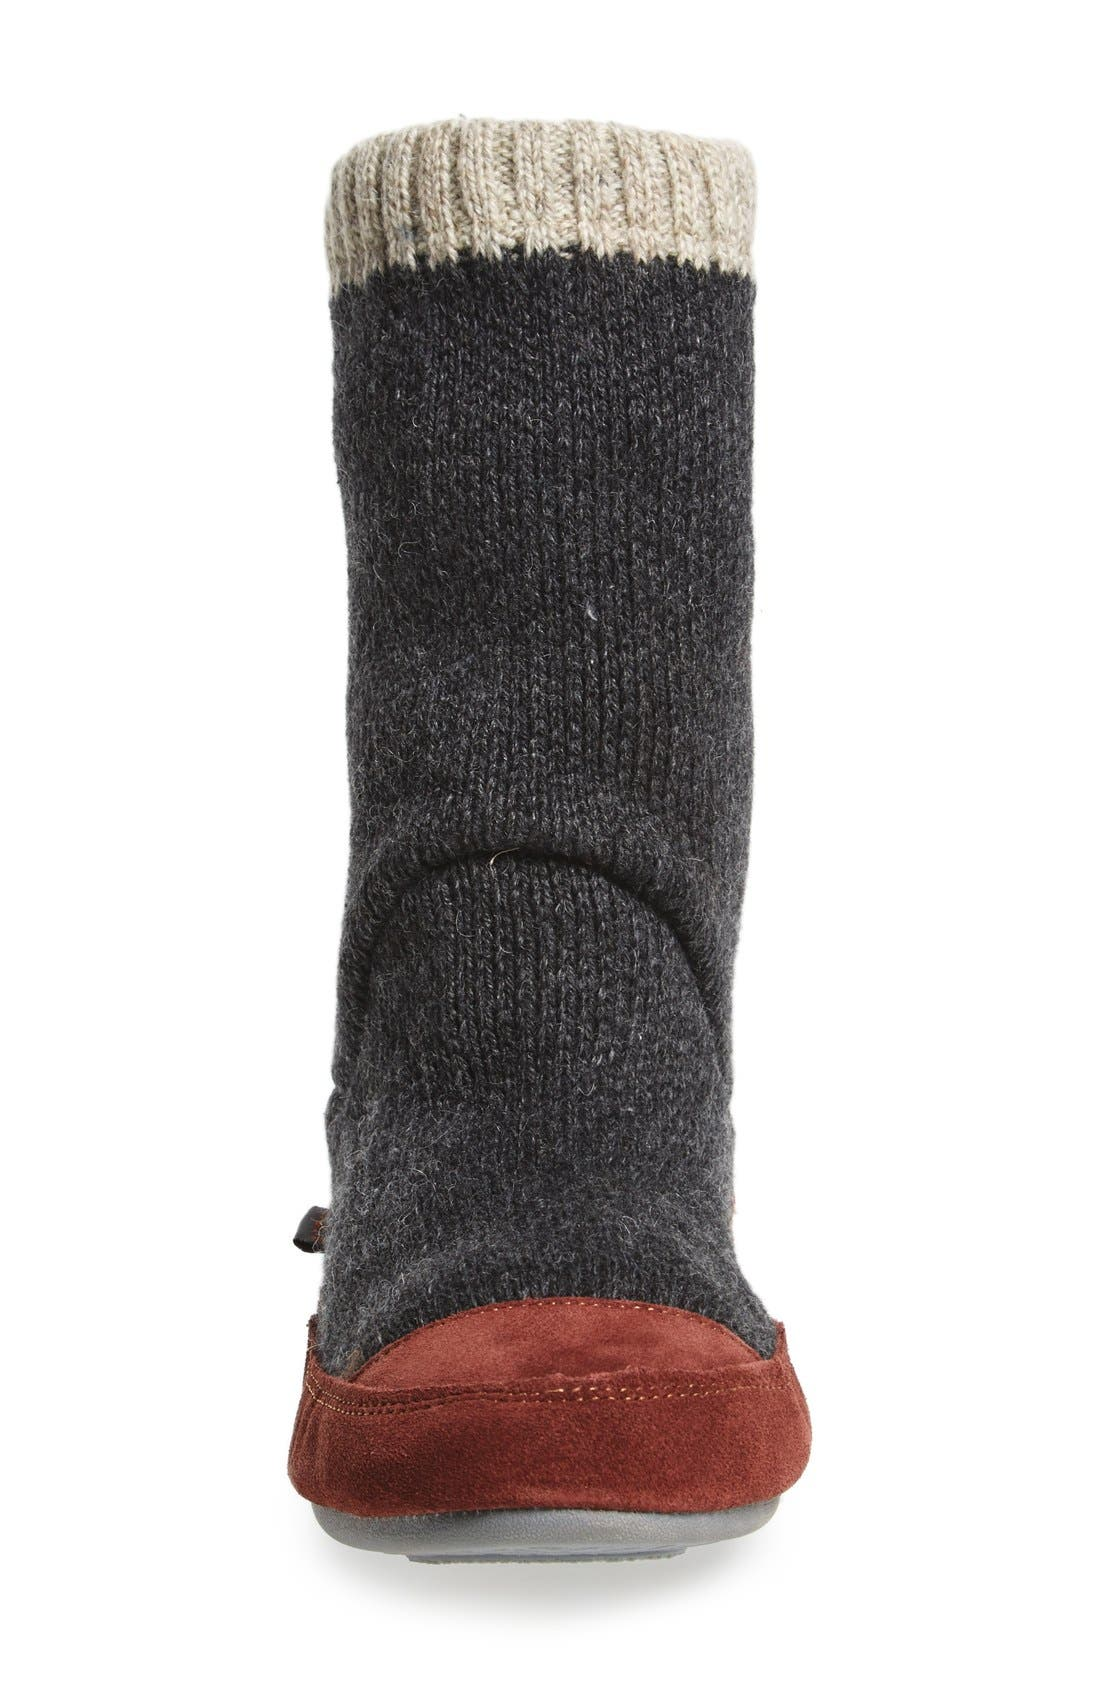 'Slouch Boot' Slipper,                             Alternate thumbnail 4, color,                             CHARCOAL RAGG WOOL